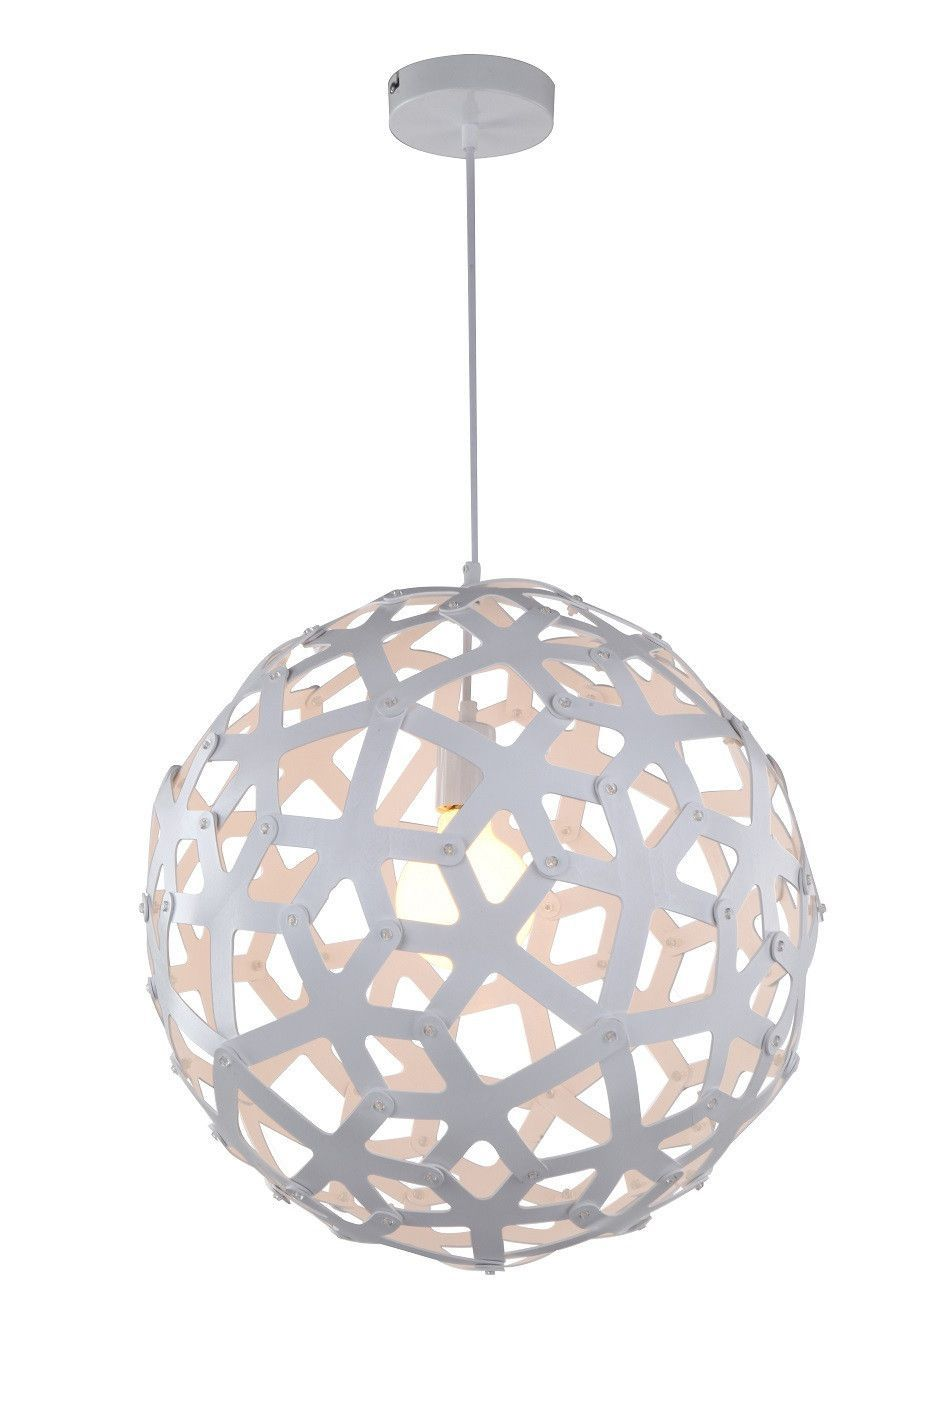 Large Wood Sphere Light Fixture White With Light Bulb Turned On